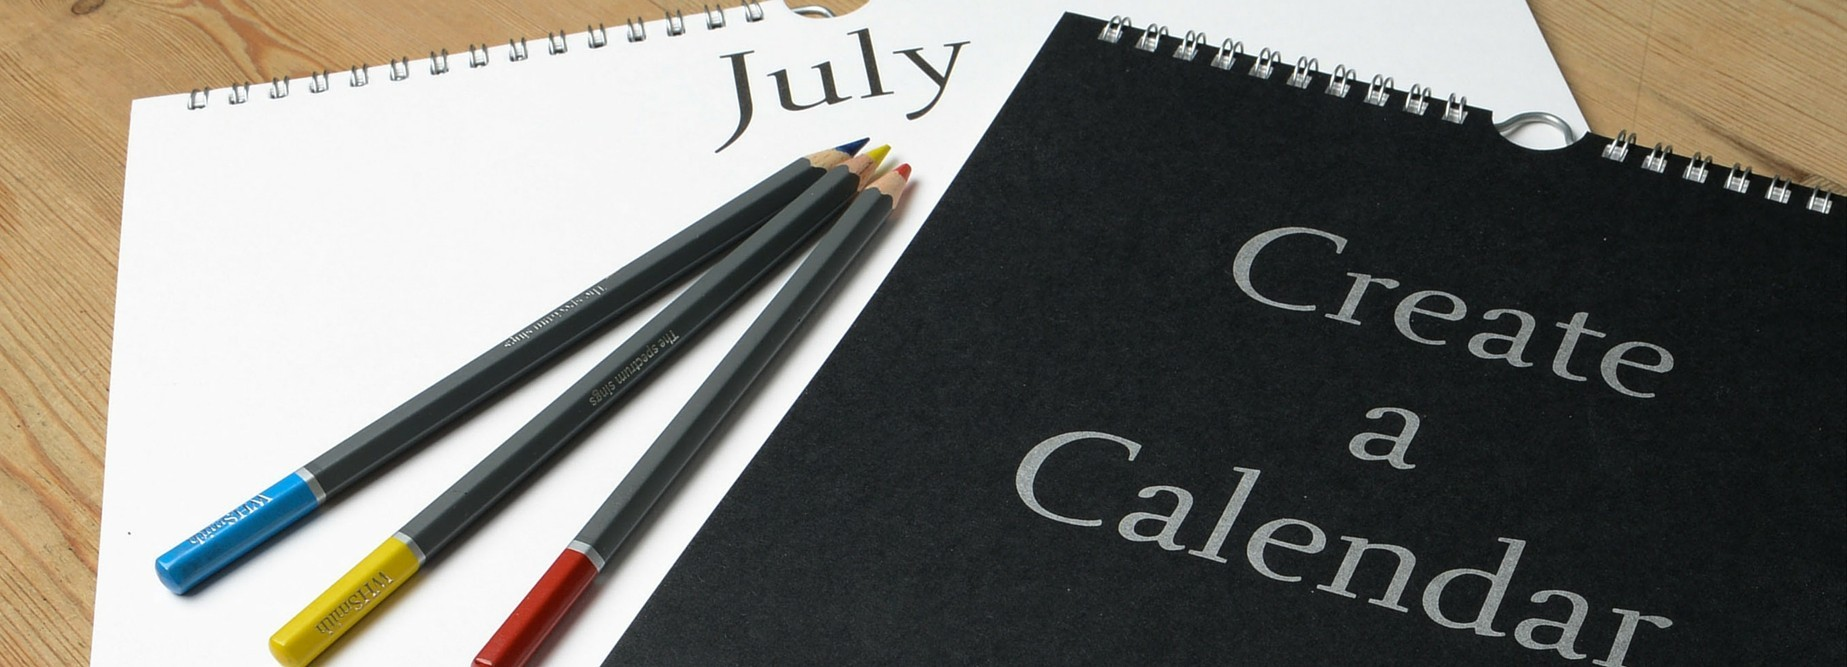 create a calendar blank calendar to illustrate